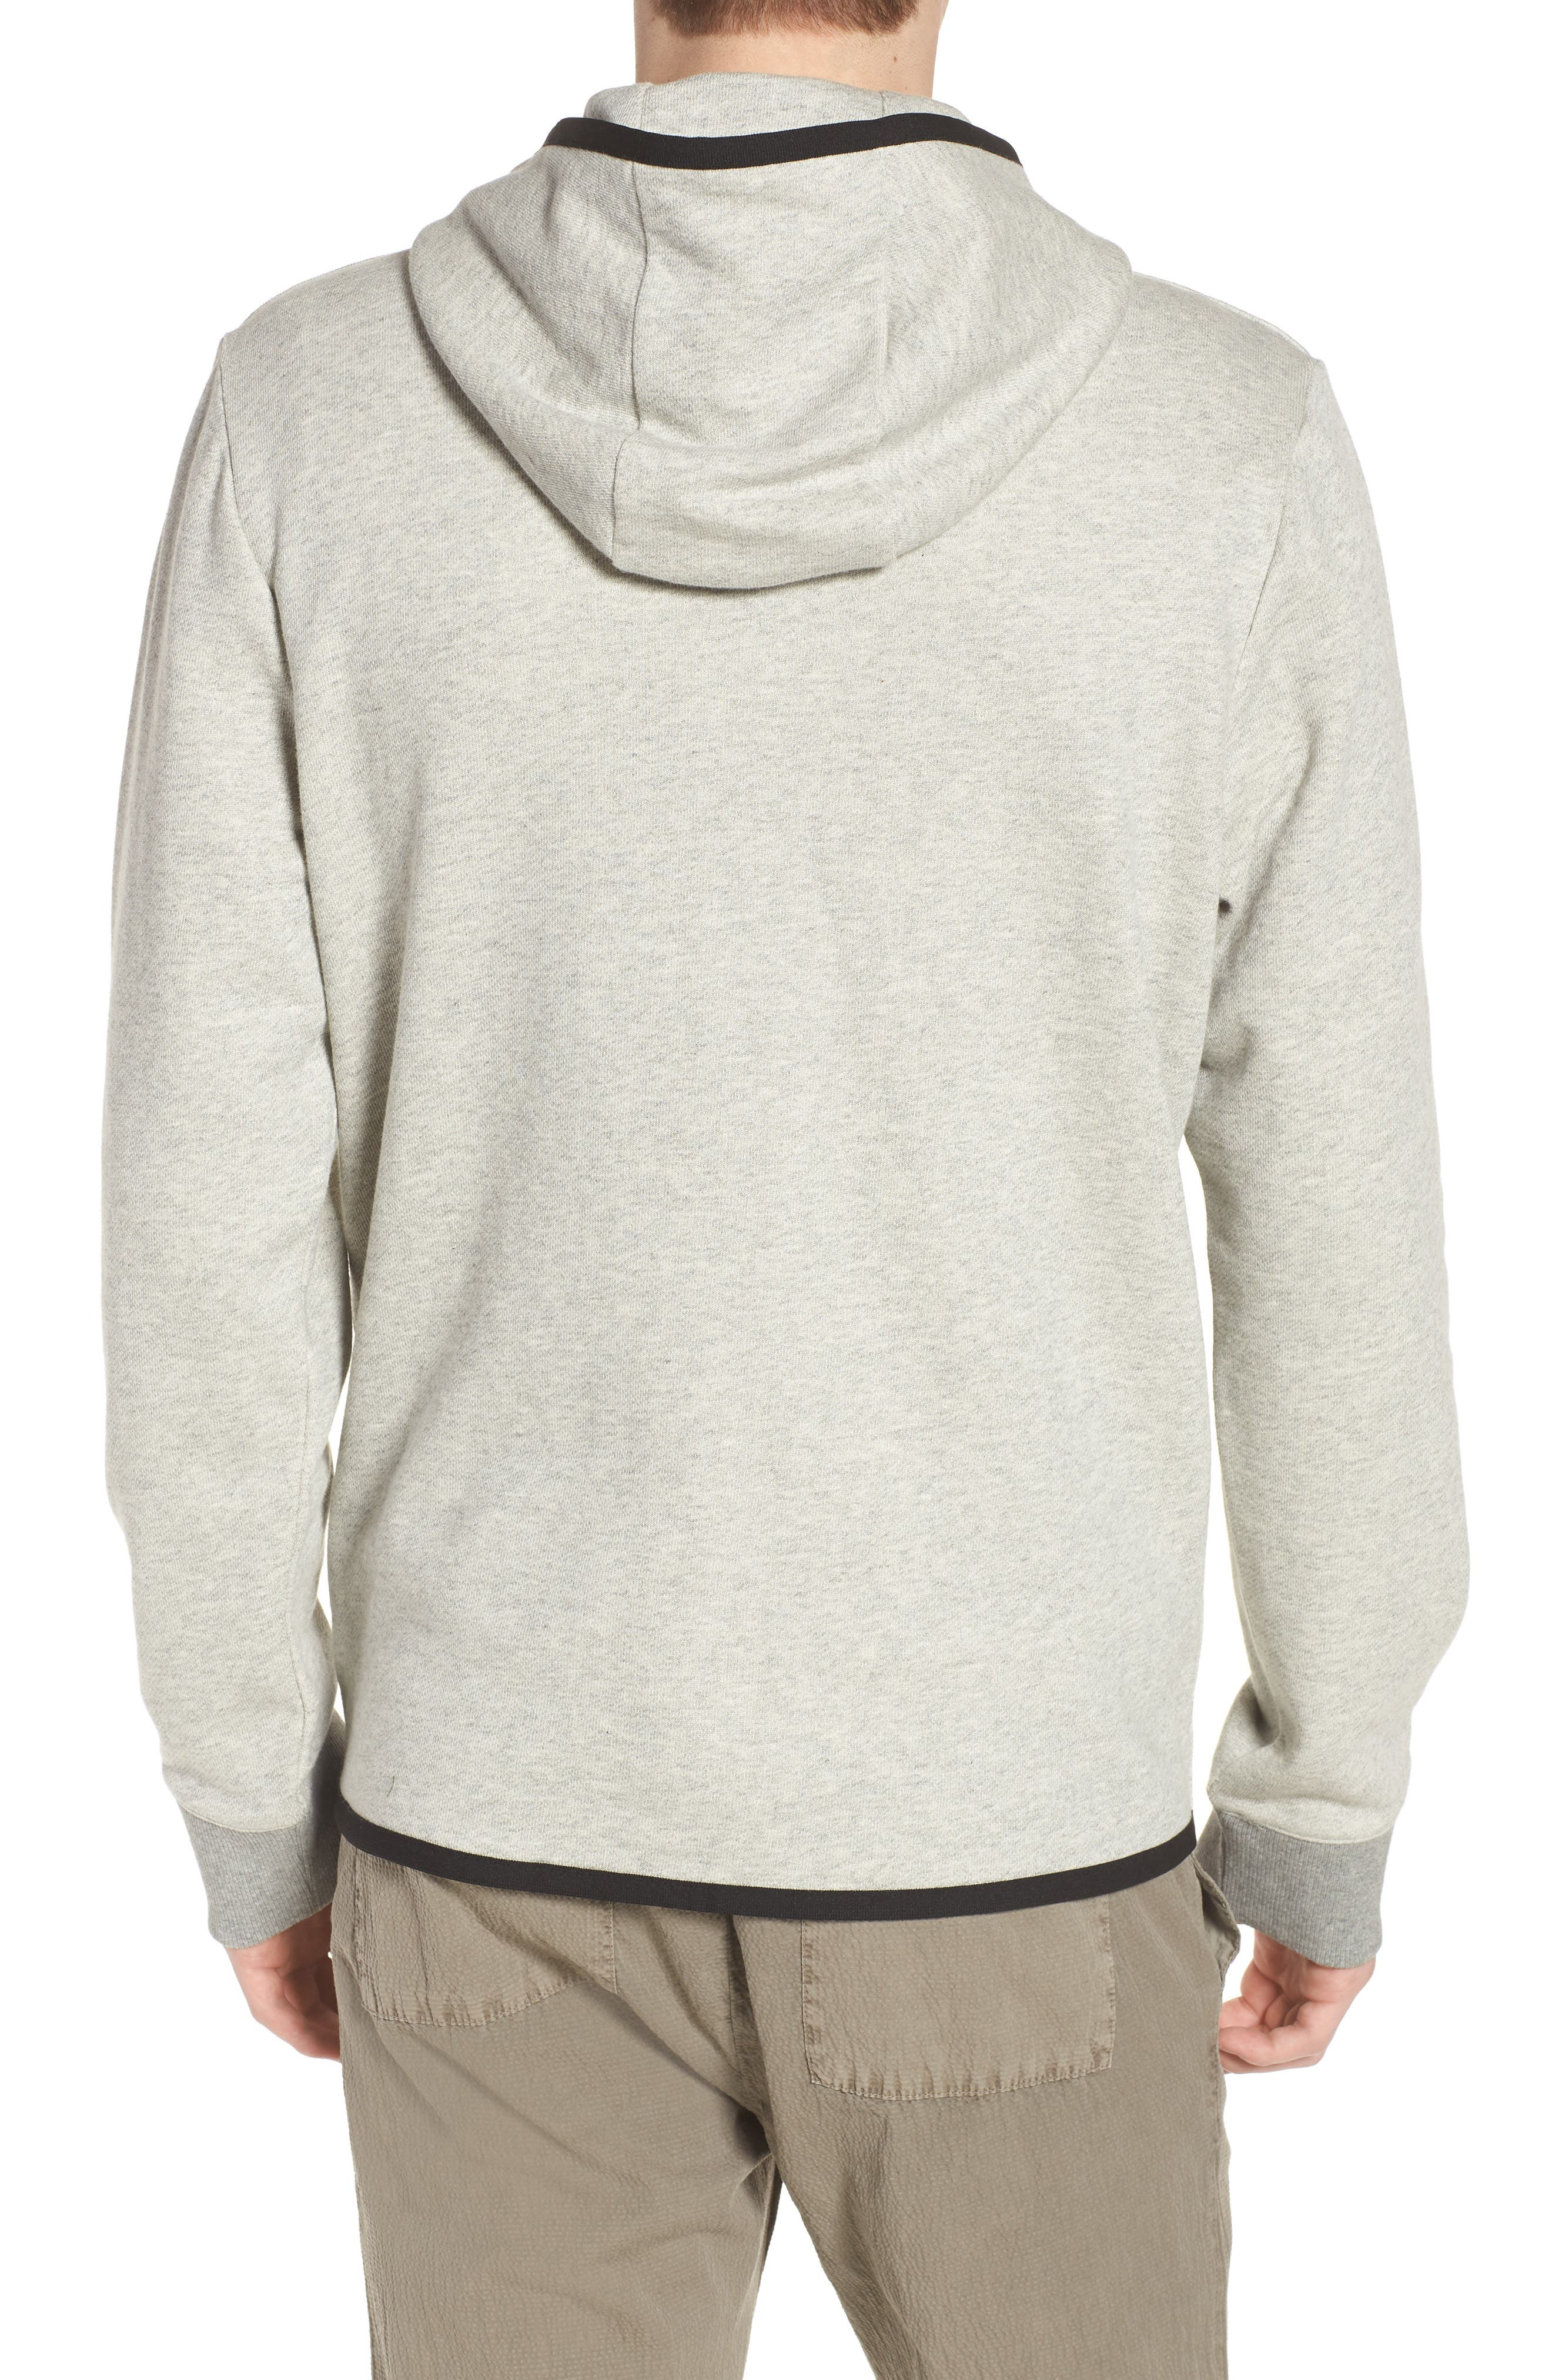 French Terry Zip Hoodie,                             Alternate thumbnail 2, color,                             Heather Grey/ Black